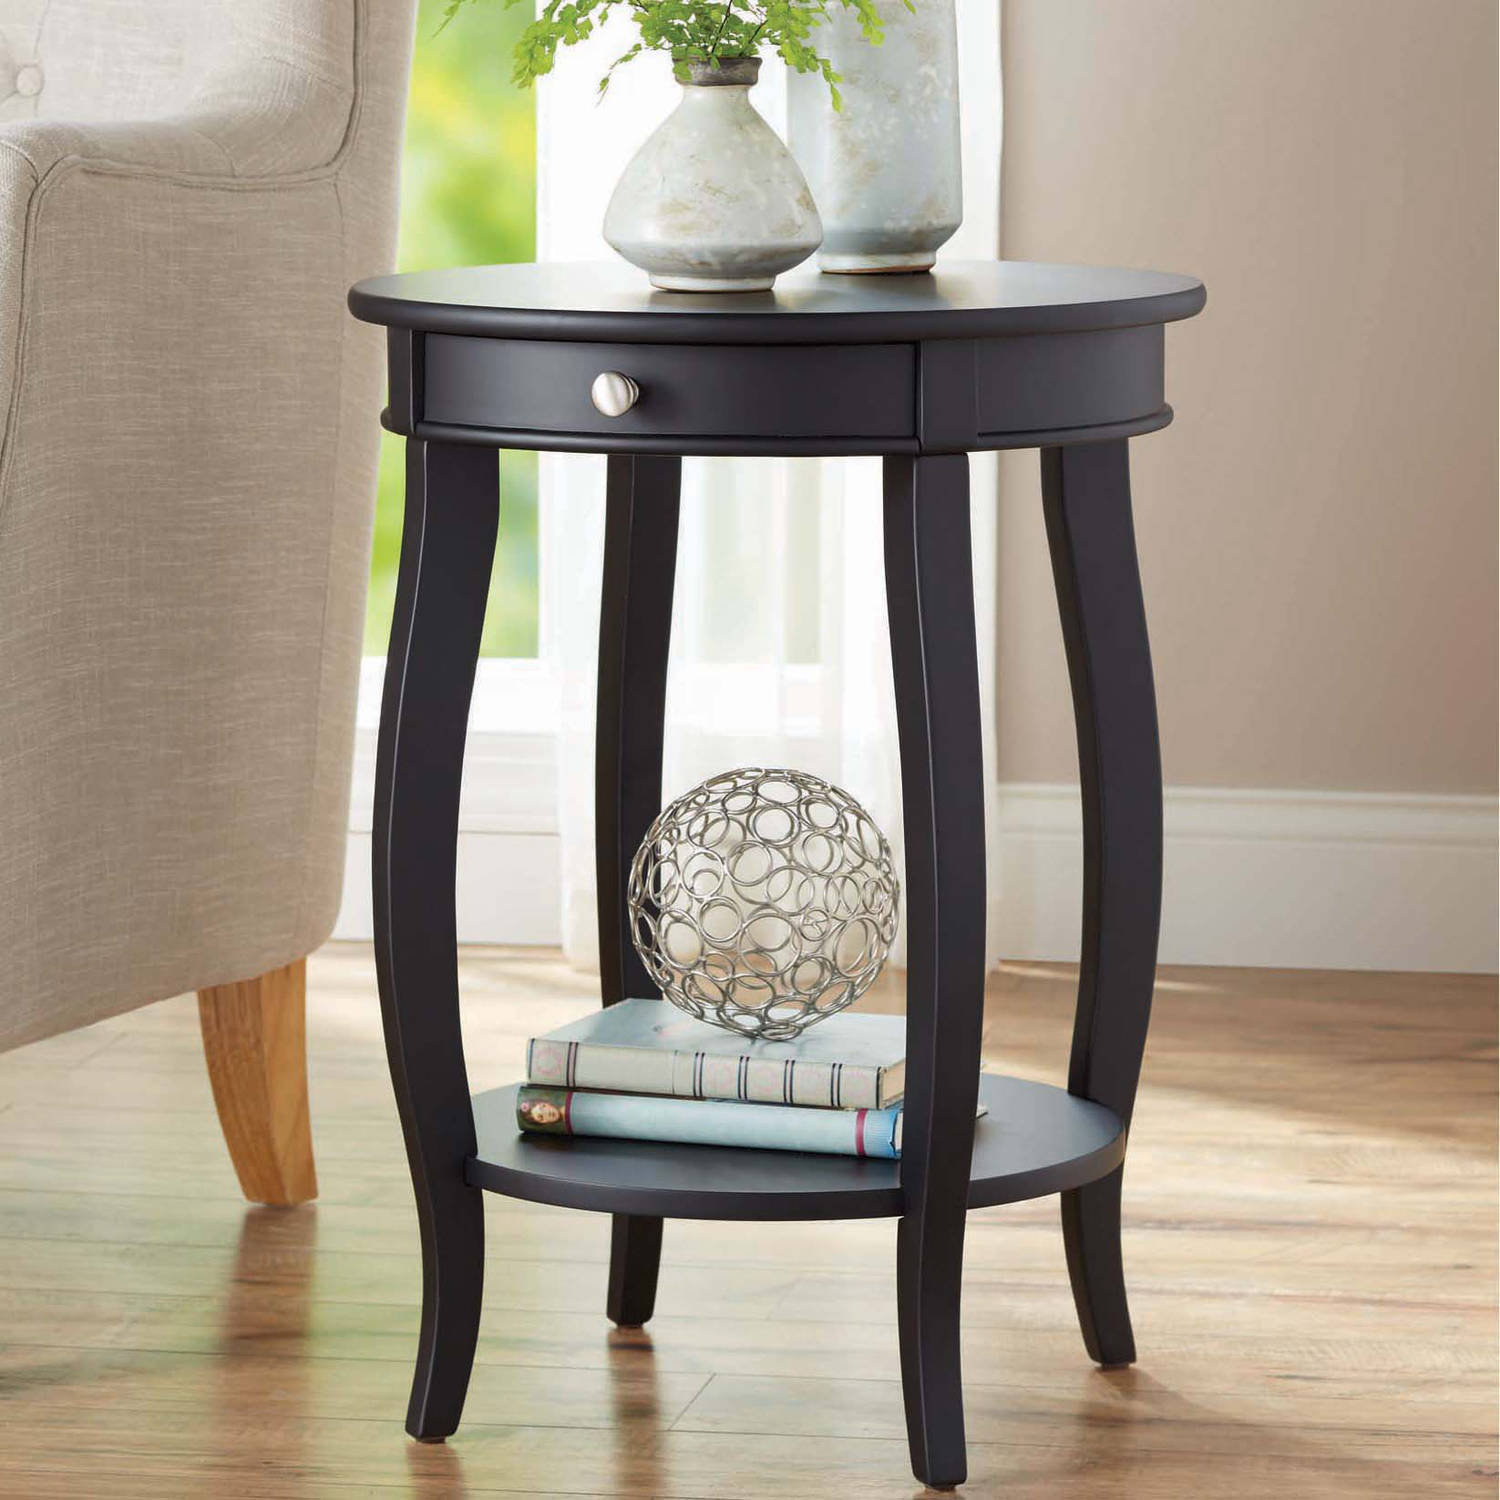 better homes gardens round accent table with drawer multiple drawers colors bedside charging station globe lighting mirrored coffee tama drum stool ikea closet organizer hairpin